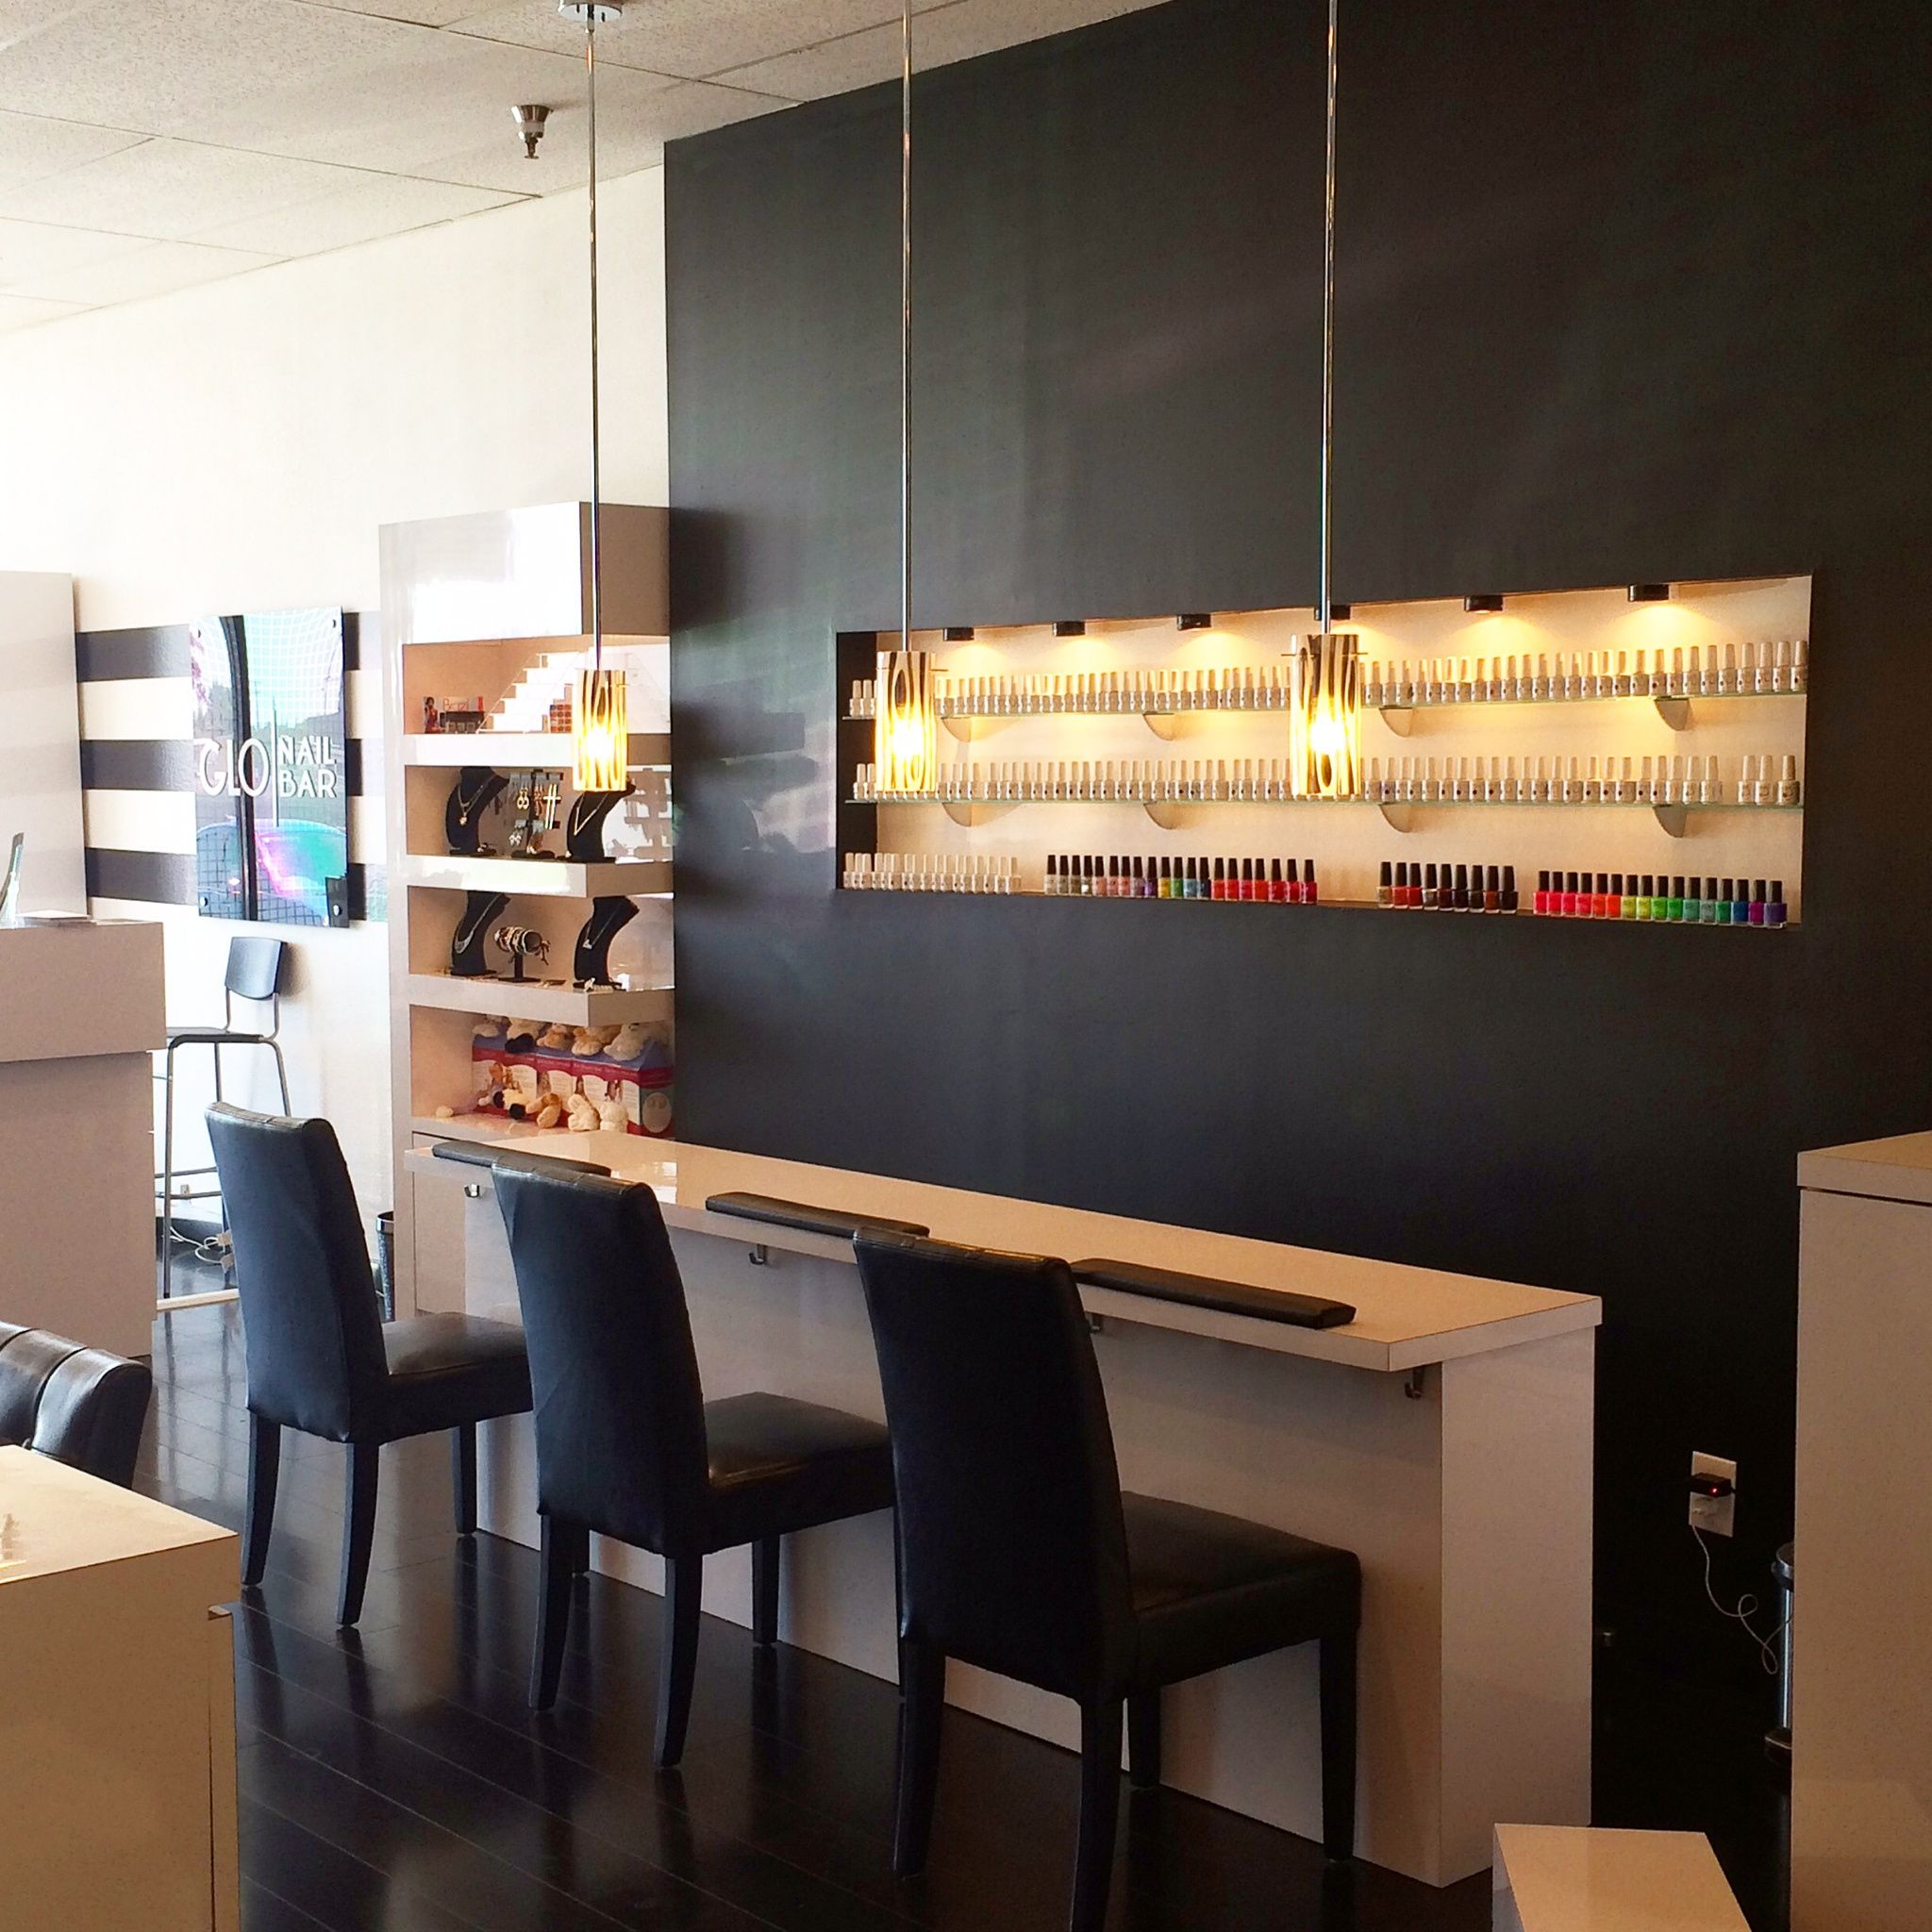 cool salons glo nail bar in costa mesa calif salon. Black Bedroom Furniture Sets. Home Design Ideas